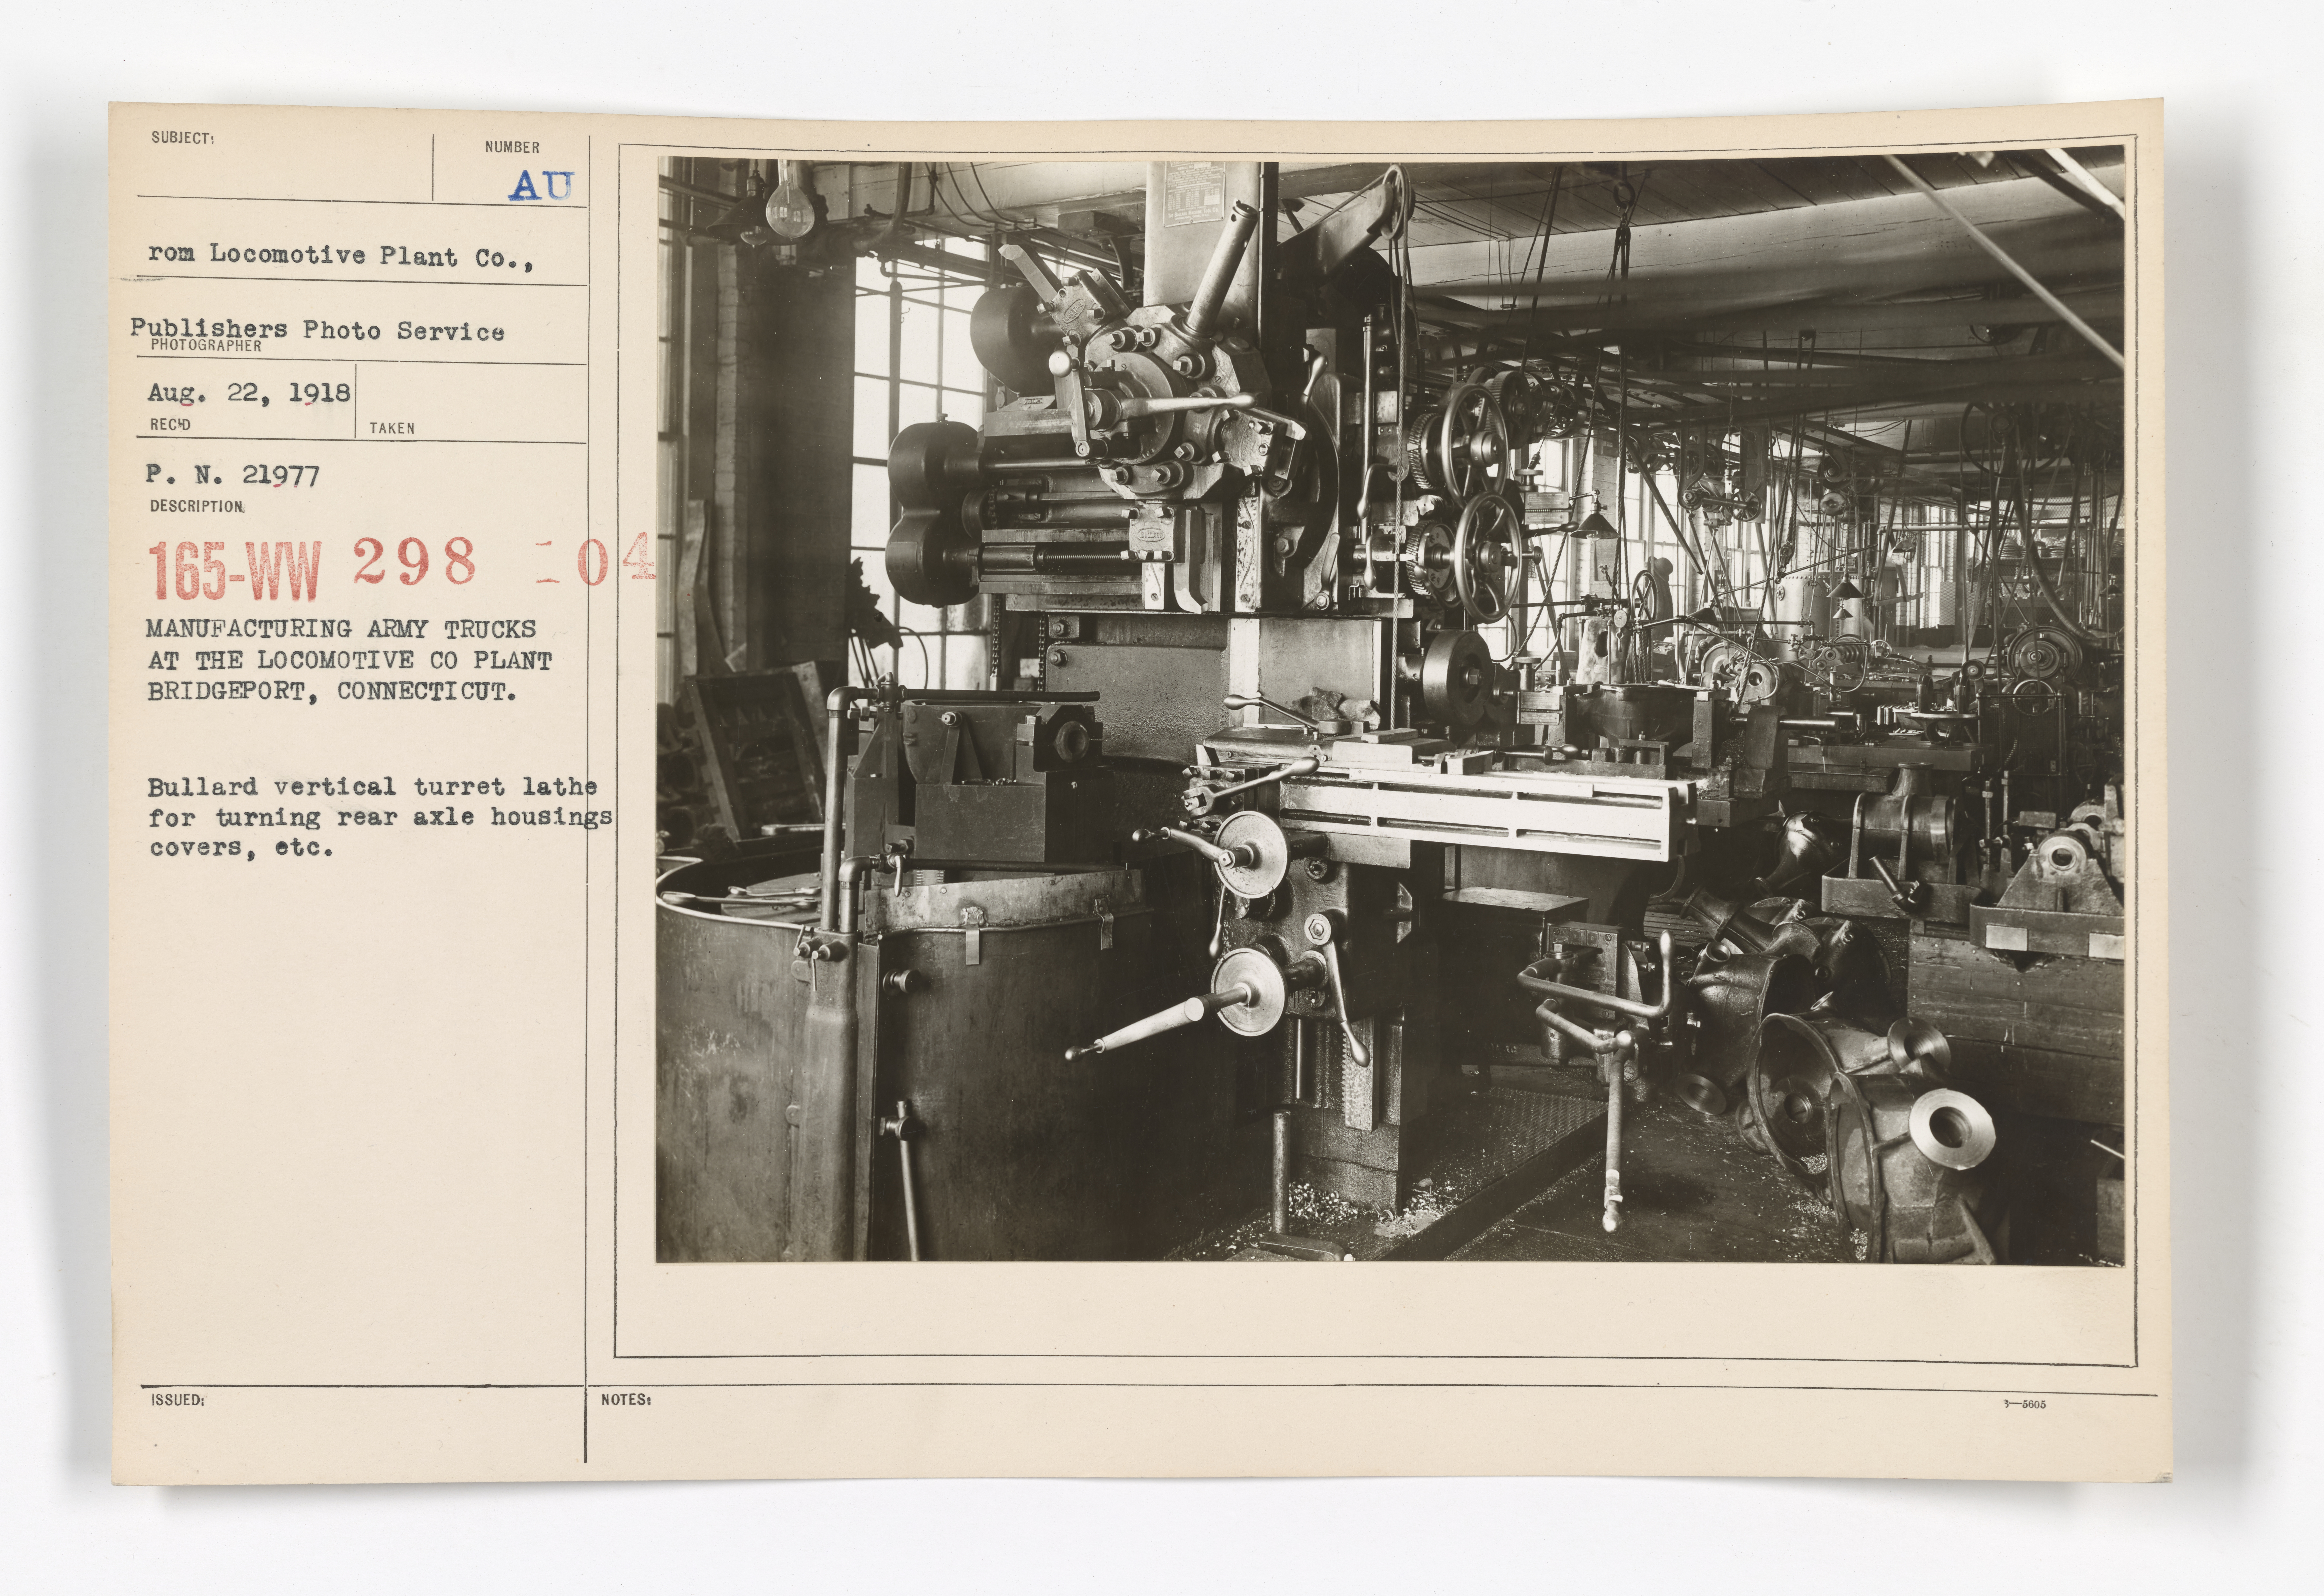 Motor Vehicles - Motor Trucks - Manufacturers - Manufacturing Army trucks at the Locomotive Co Plant, Bridgeport, Connecticut. Bullard vertical turret lathe for turning rear axle housings covers, etc